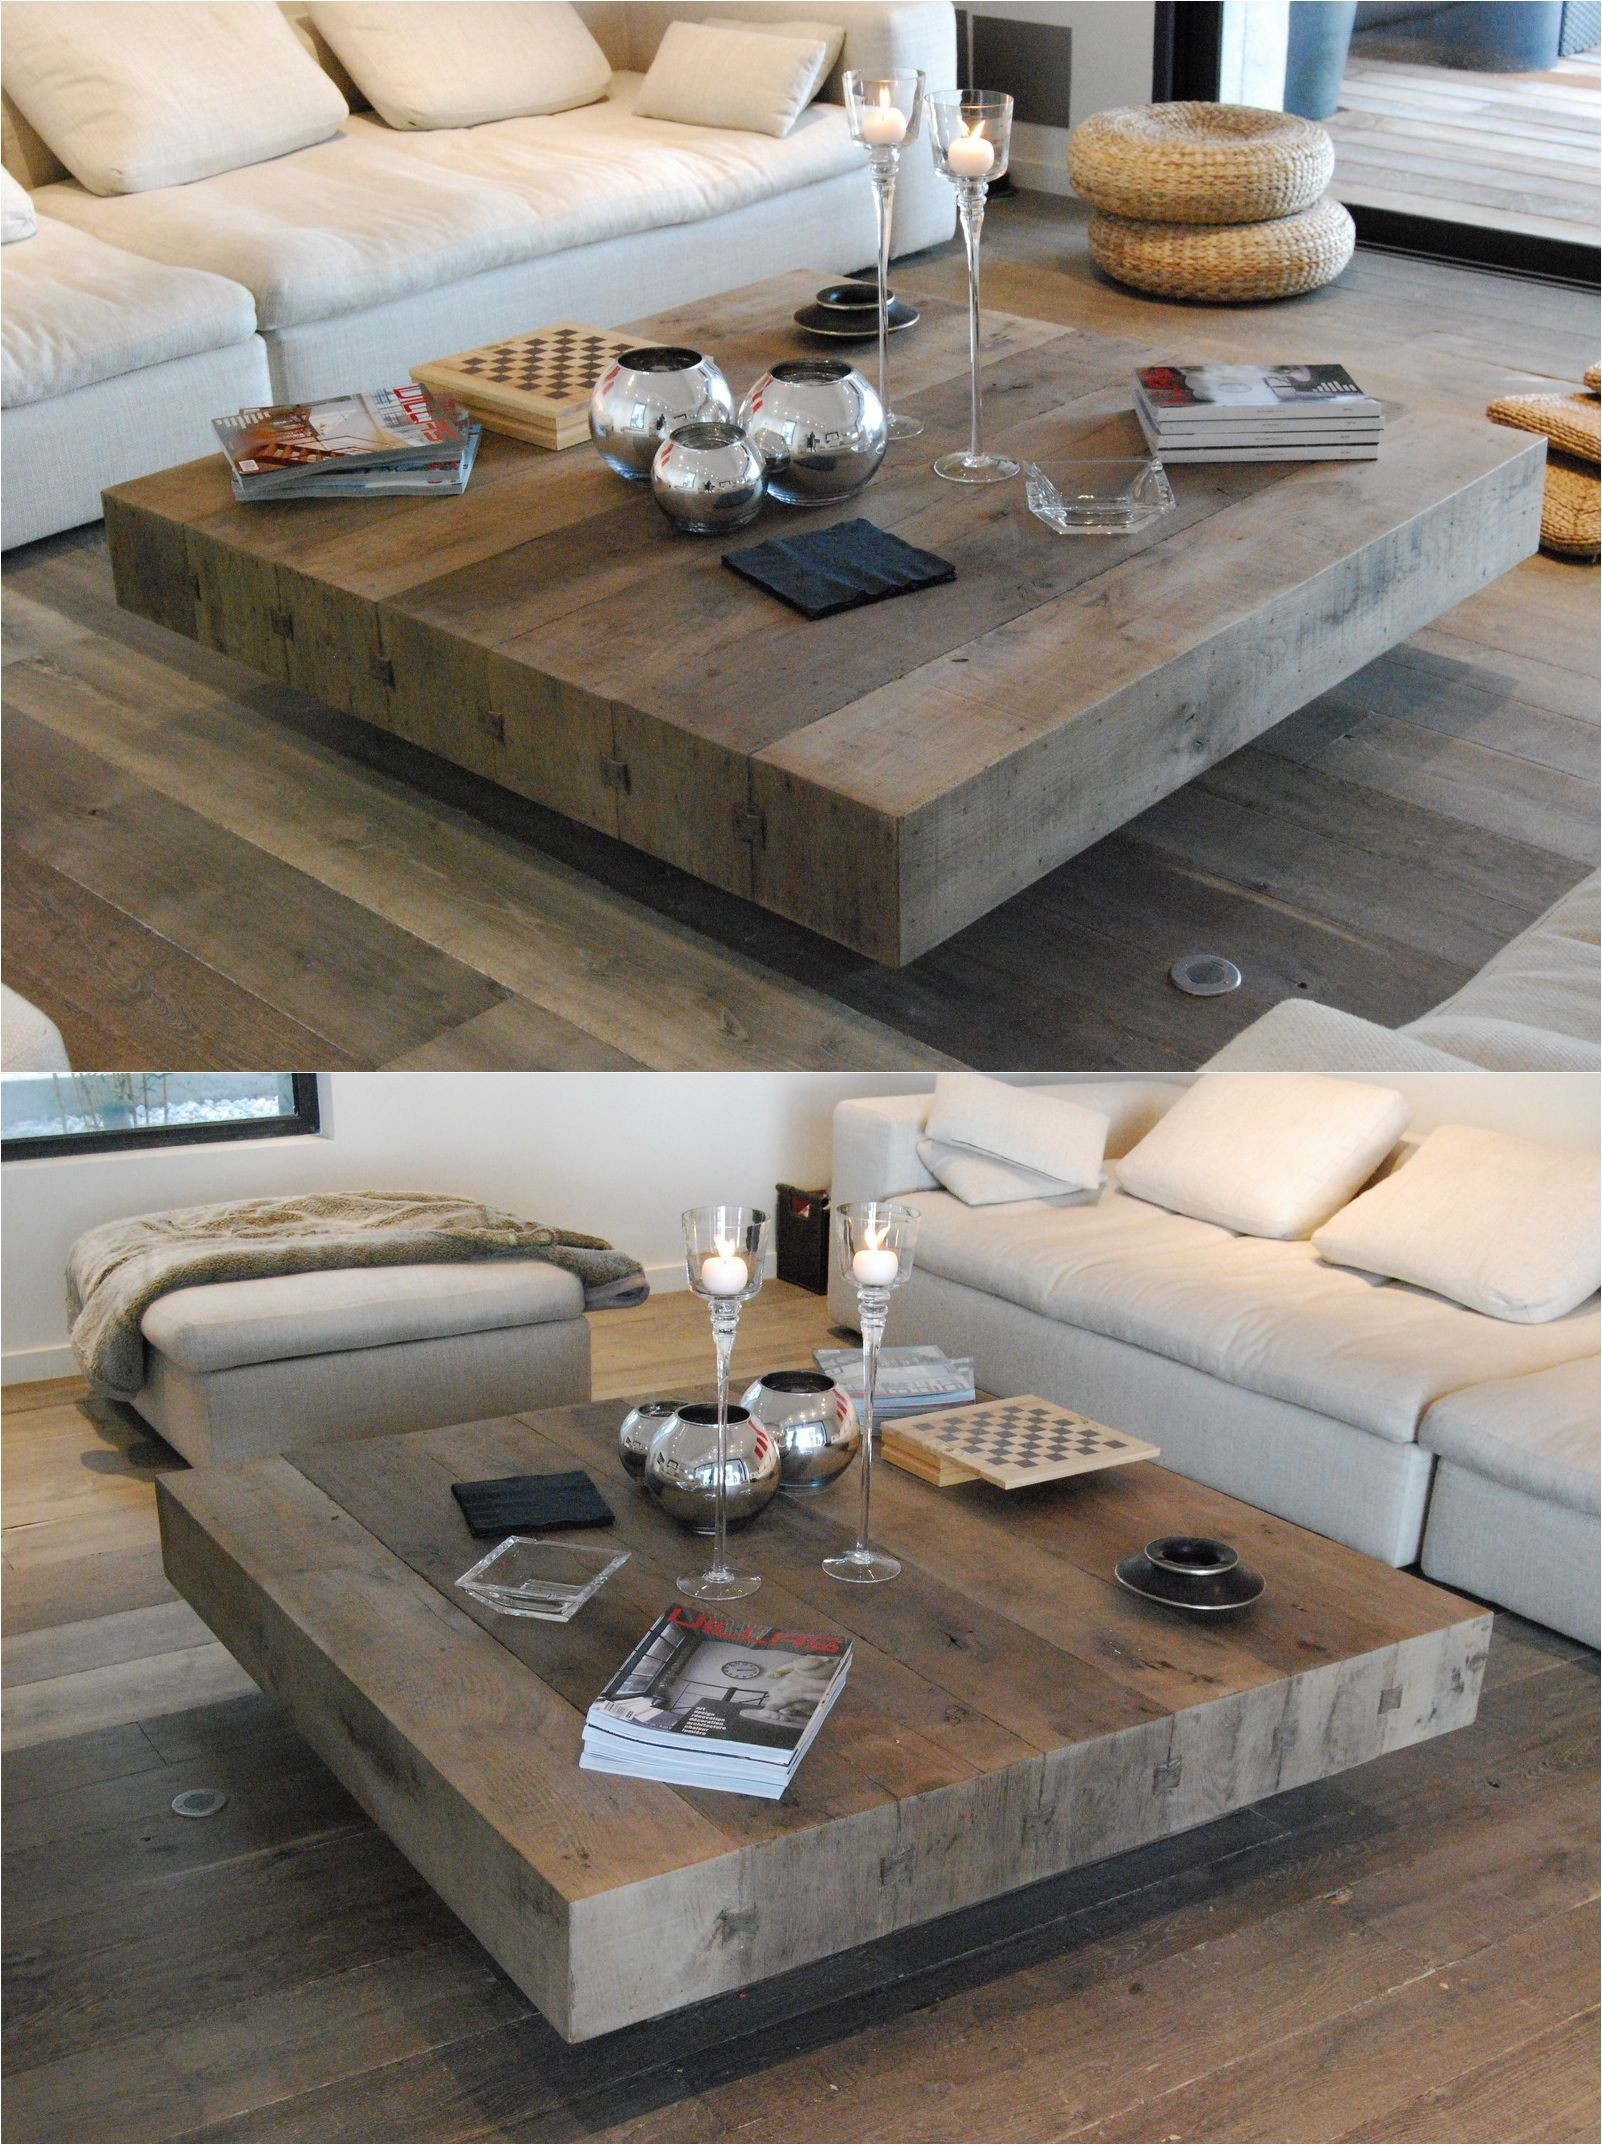 BONHEUR wooden handmade square coffee table by Di r Ca